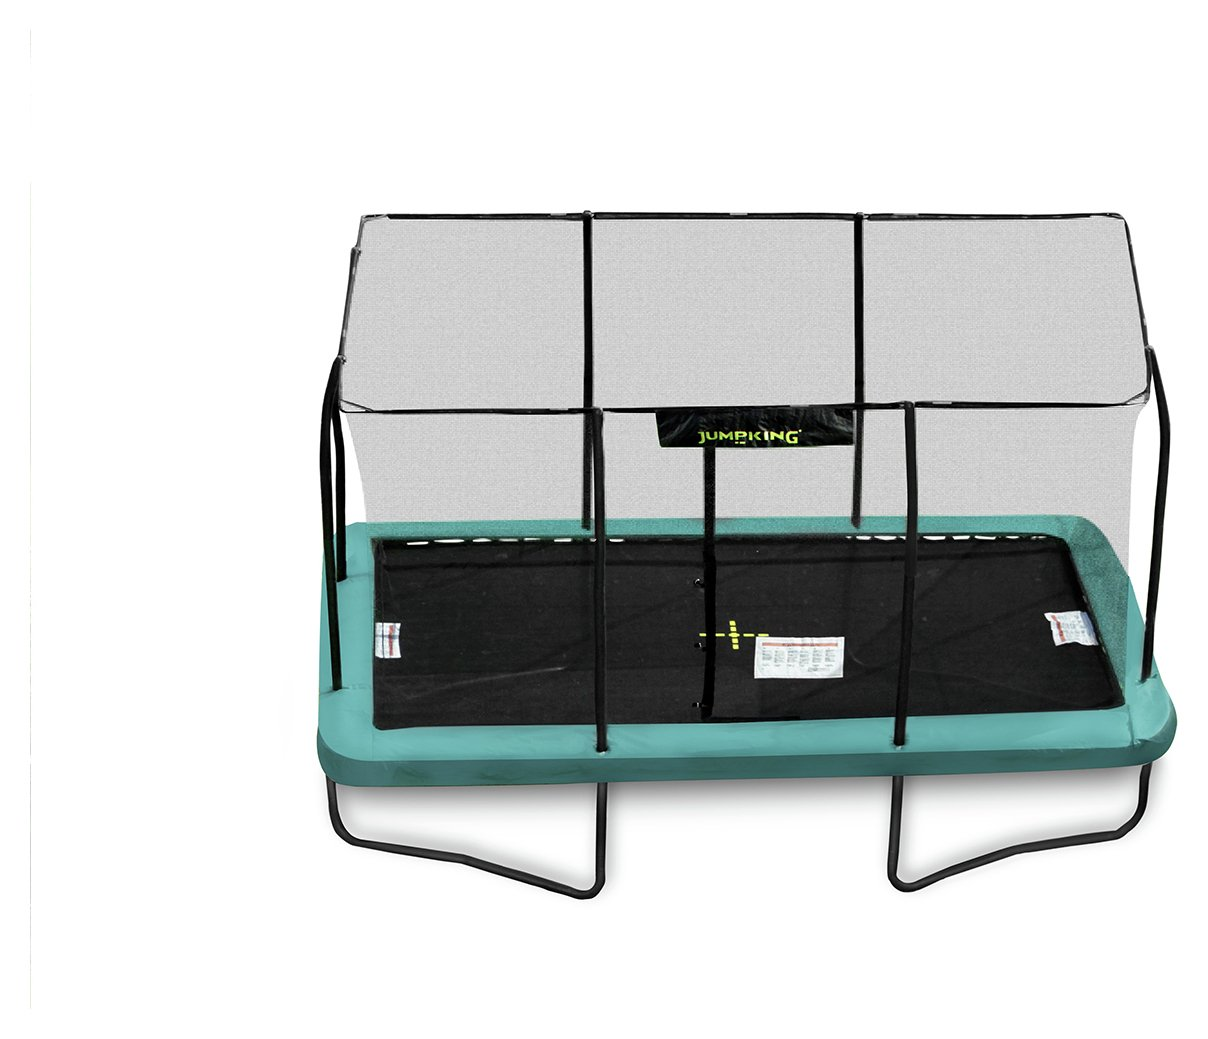 Image of Jumpking 10ft x 14ft Rectangular Trampoline with Enclosure